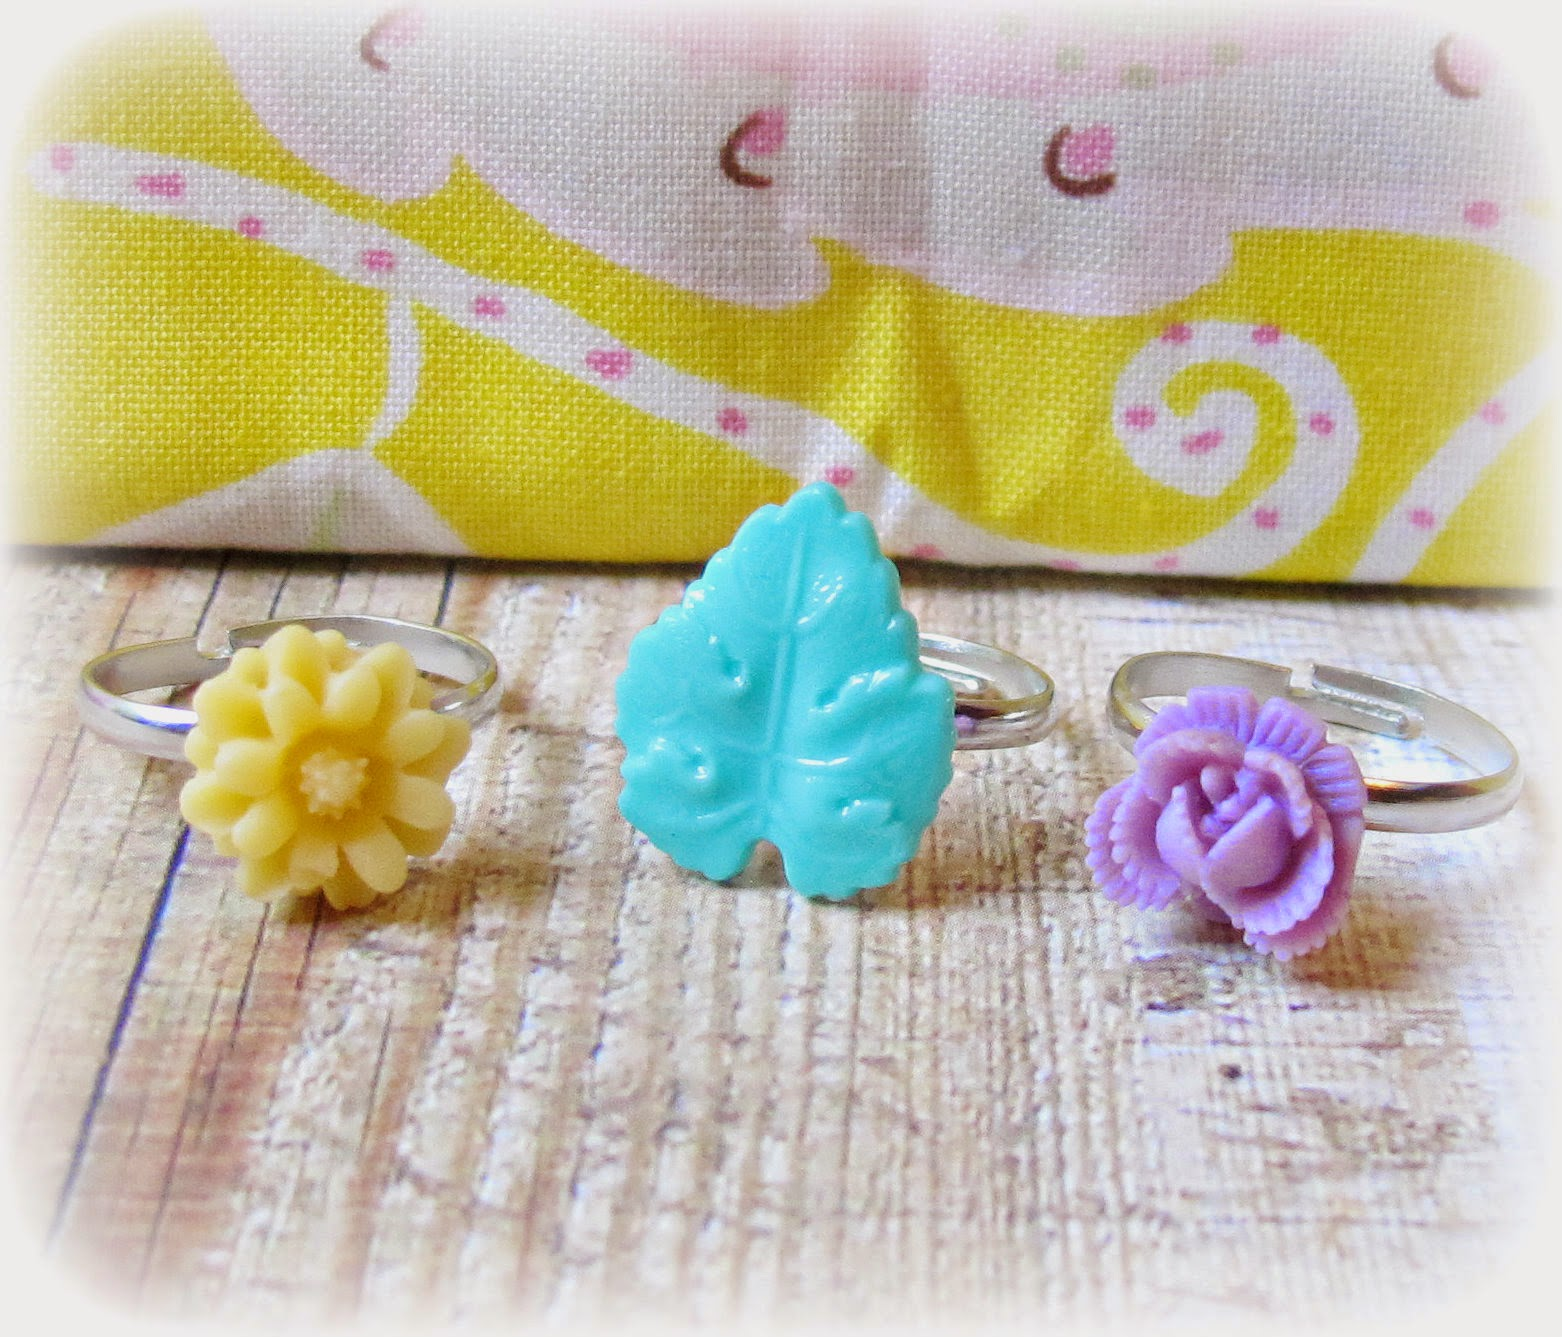 image agnieszka ring set children's jewellery jewelry two cheeky monkeys cream yellow green mint lilac purple rose flowers leaf